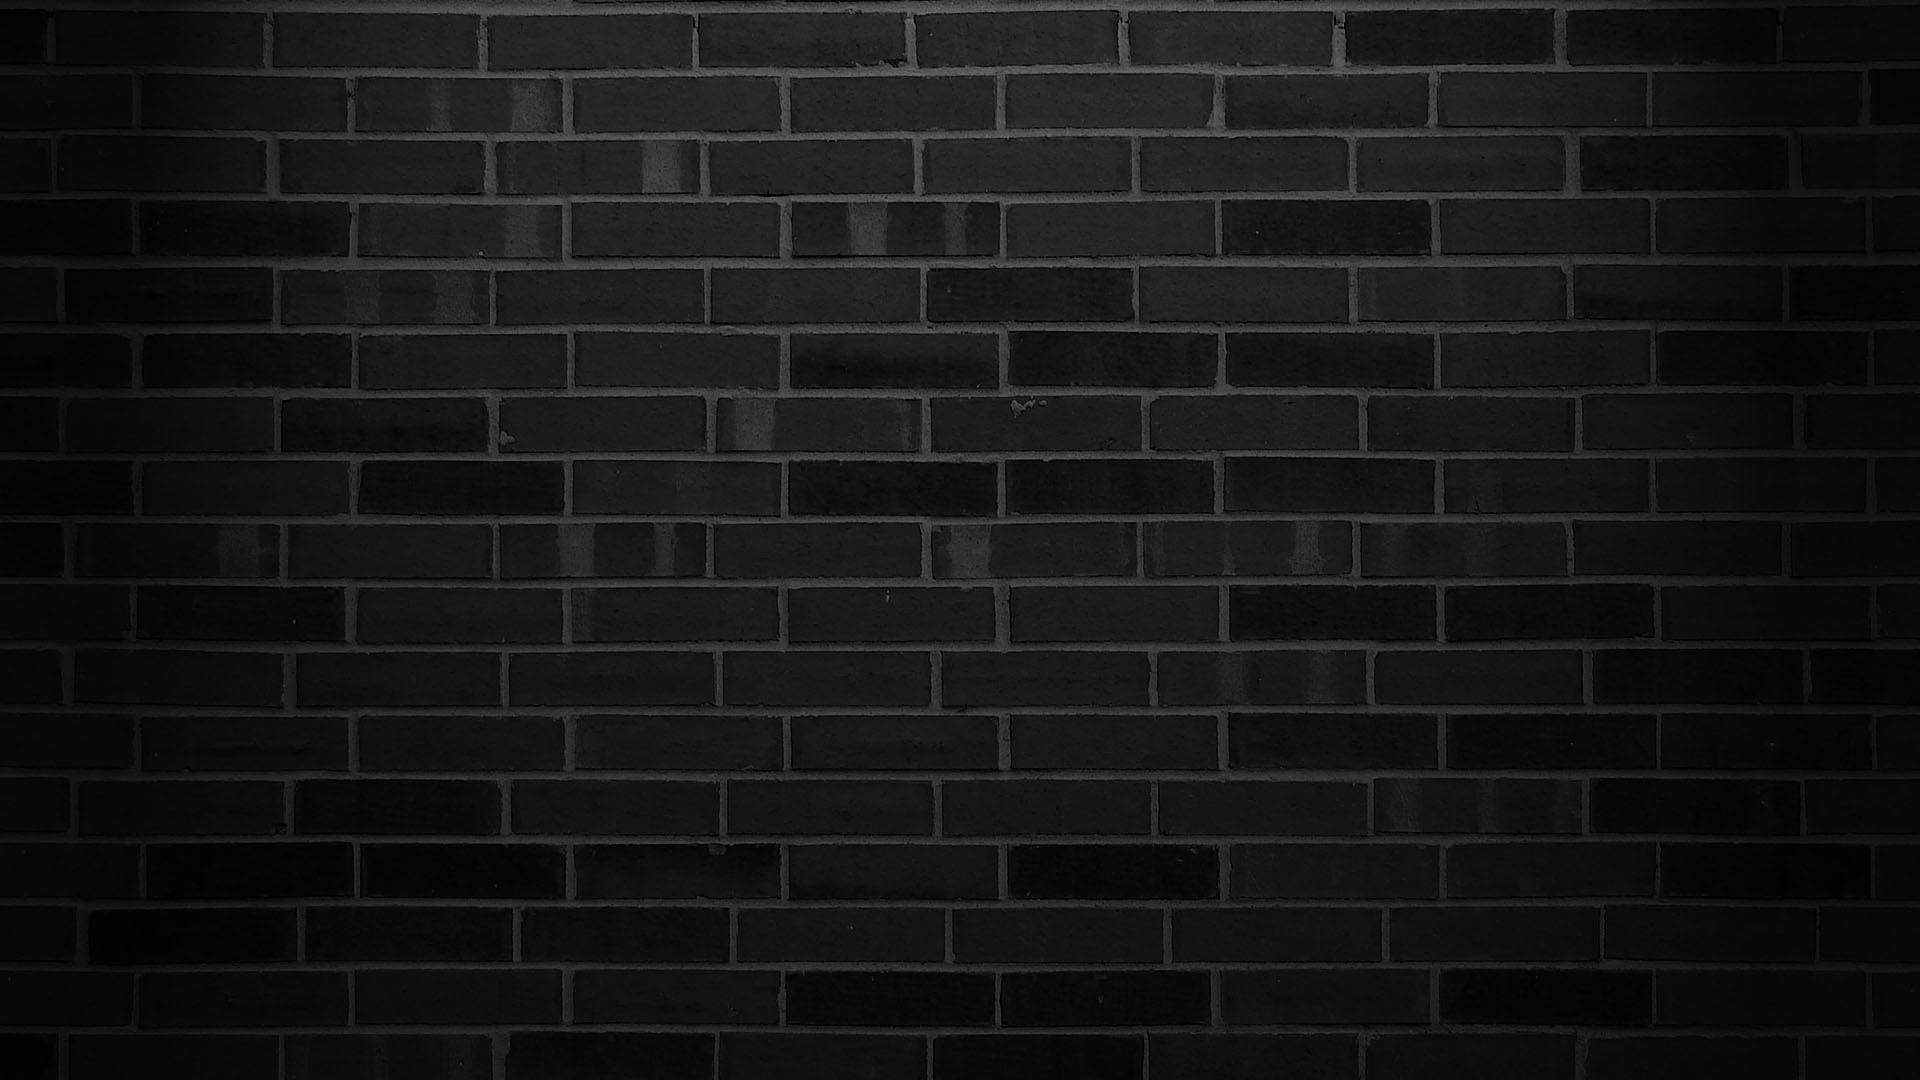 Black Brick Wall Black Brick Wallpapers Pixelstalk Net